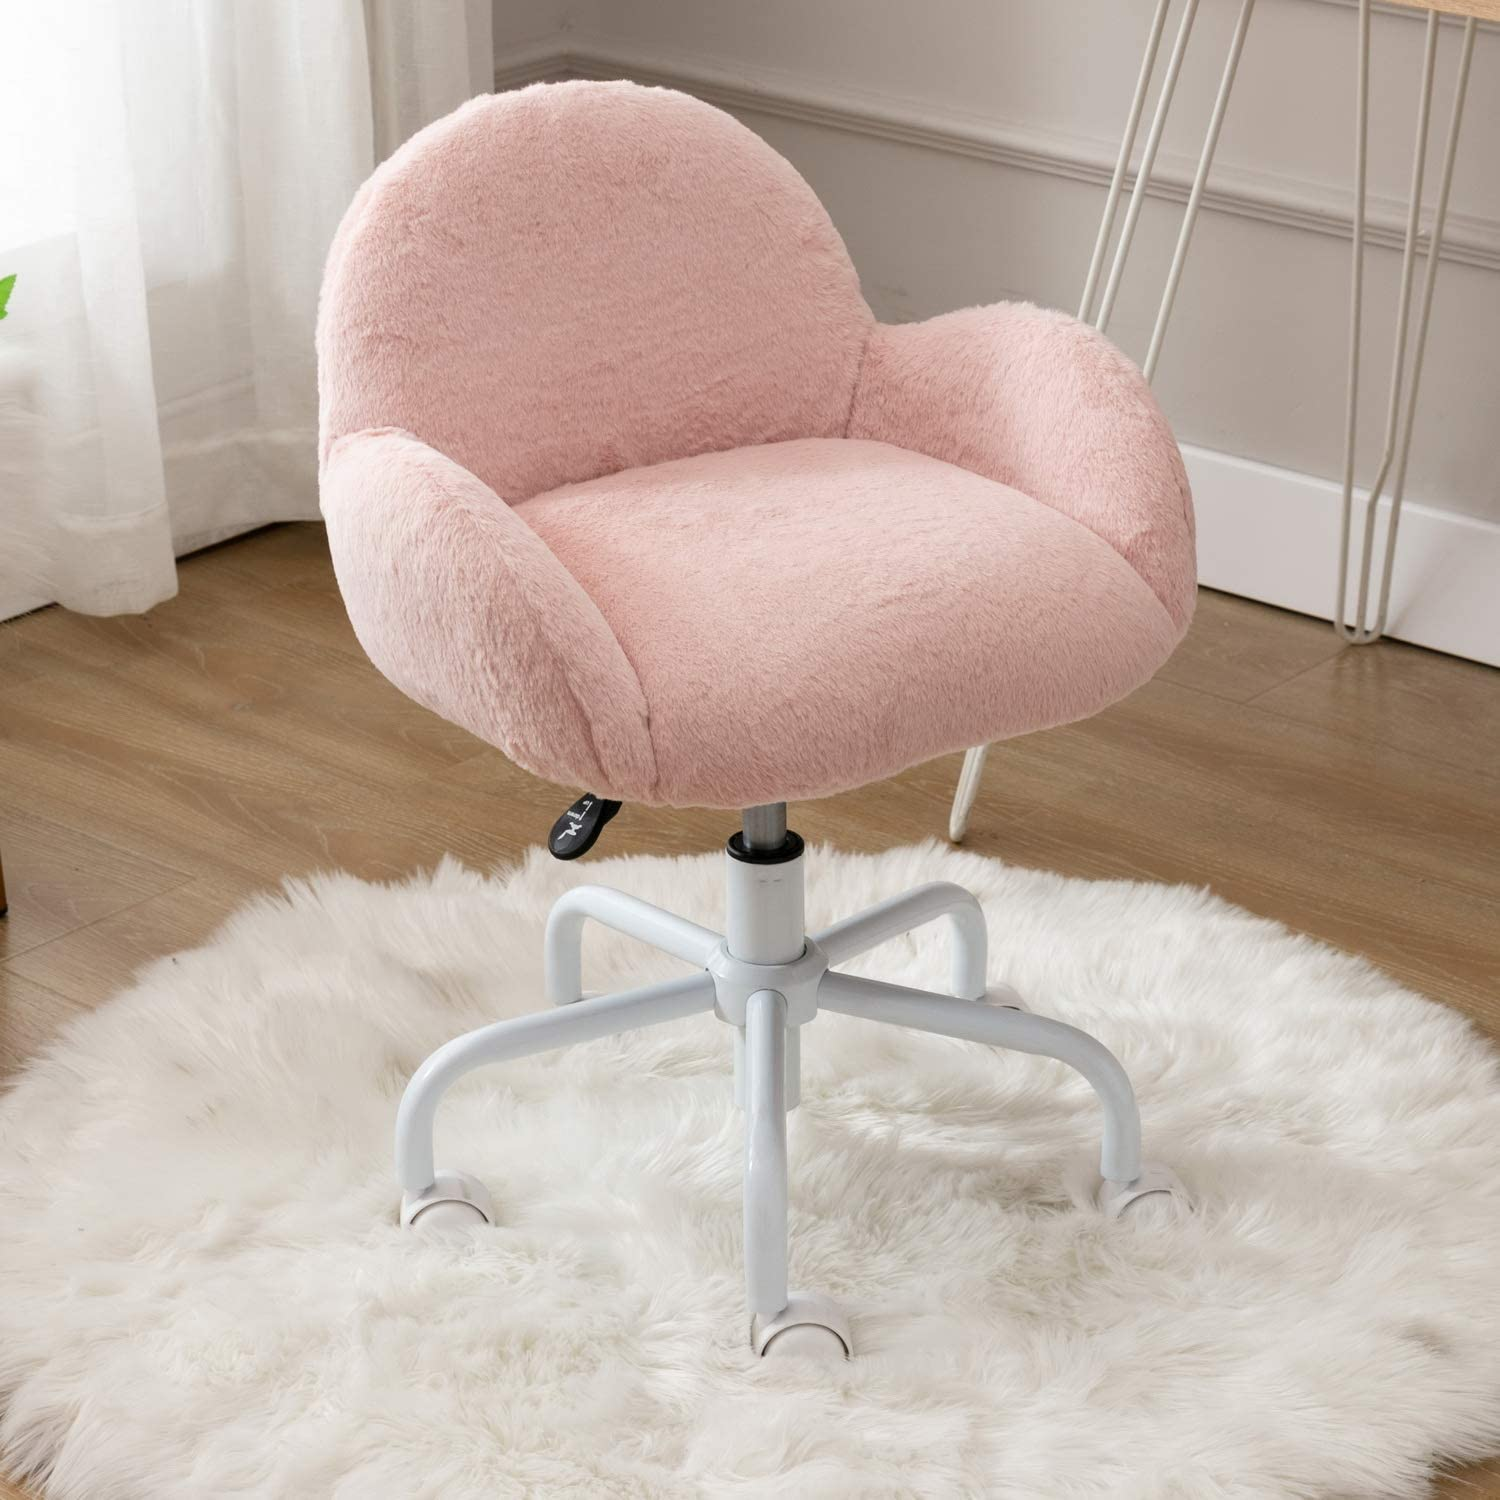 CIMOTA Pink Girls Desk Chair Furry Adjustable Study Chair with Wheels Armrest Swivel Child Rolling Computer Chair for Kids Girls Boys Bedroom